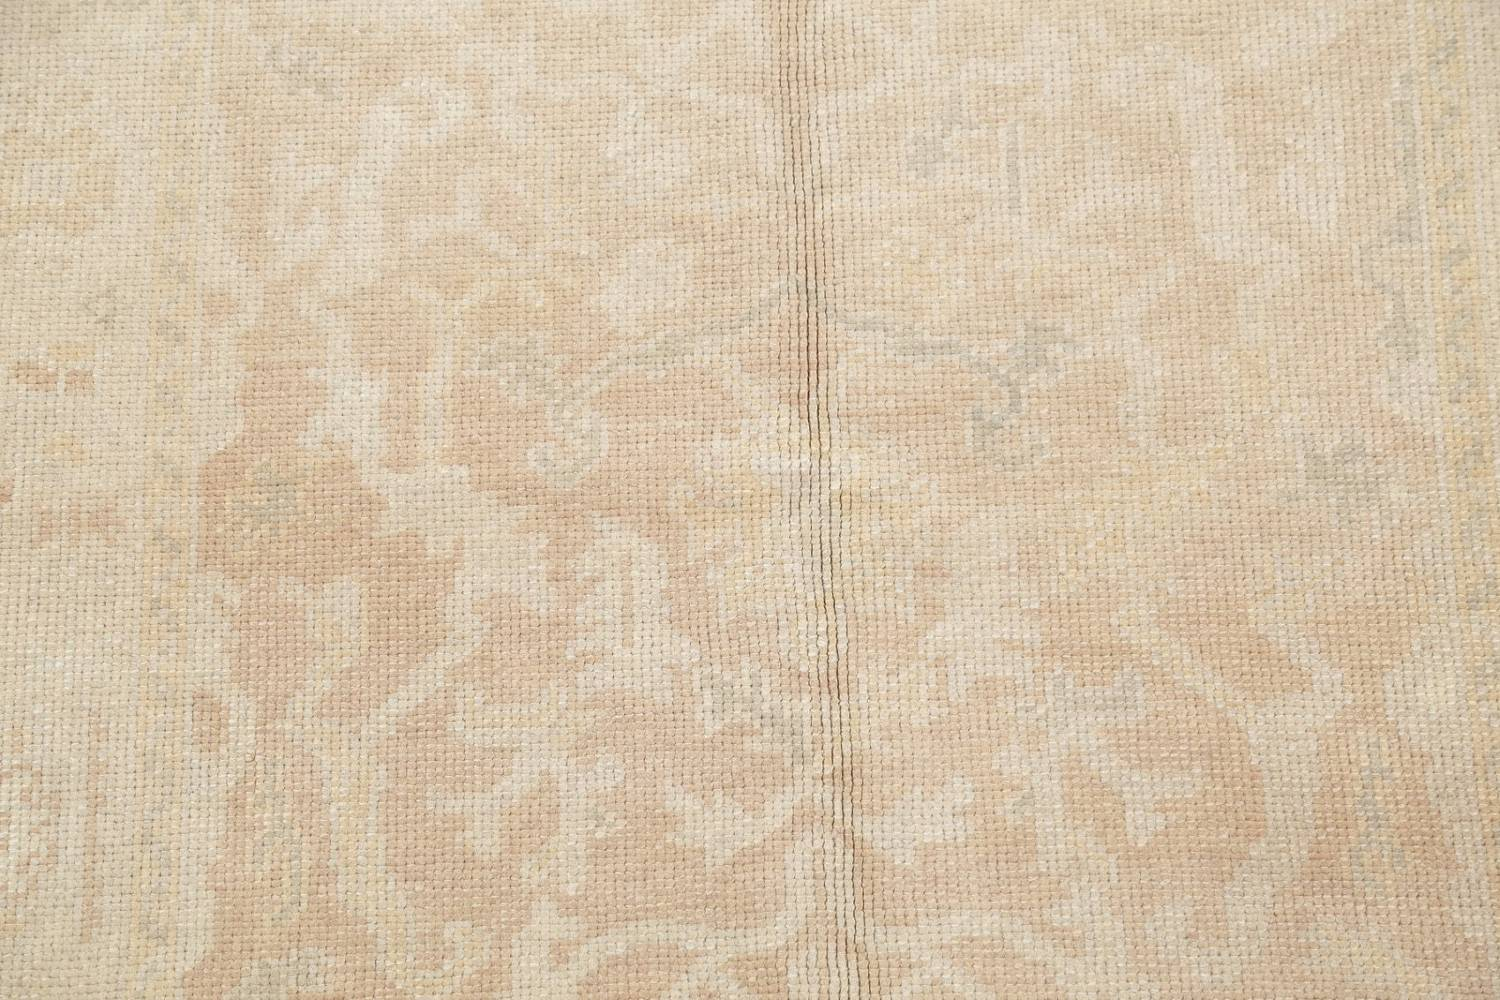 Vegetable Dye Muted Gold Oushak Turkish Hand-Knotted Area Rug 4x5 image 8